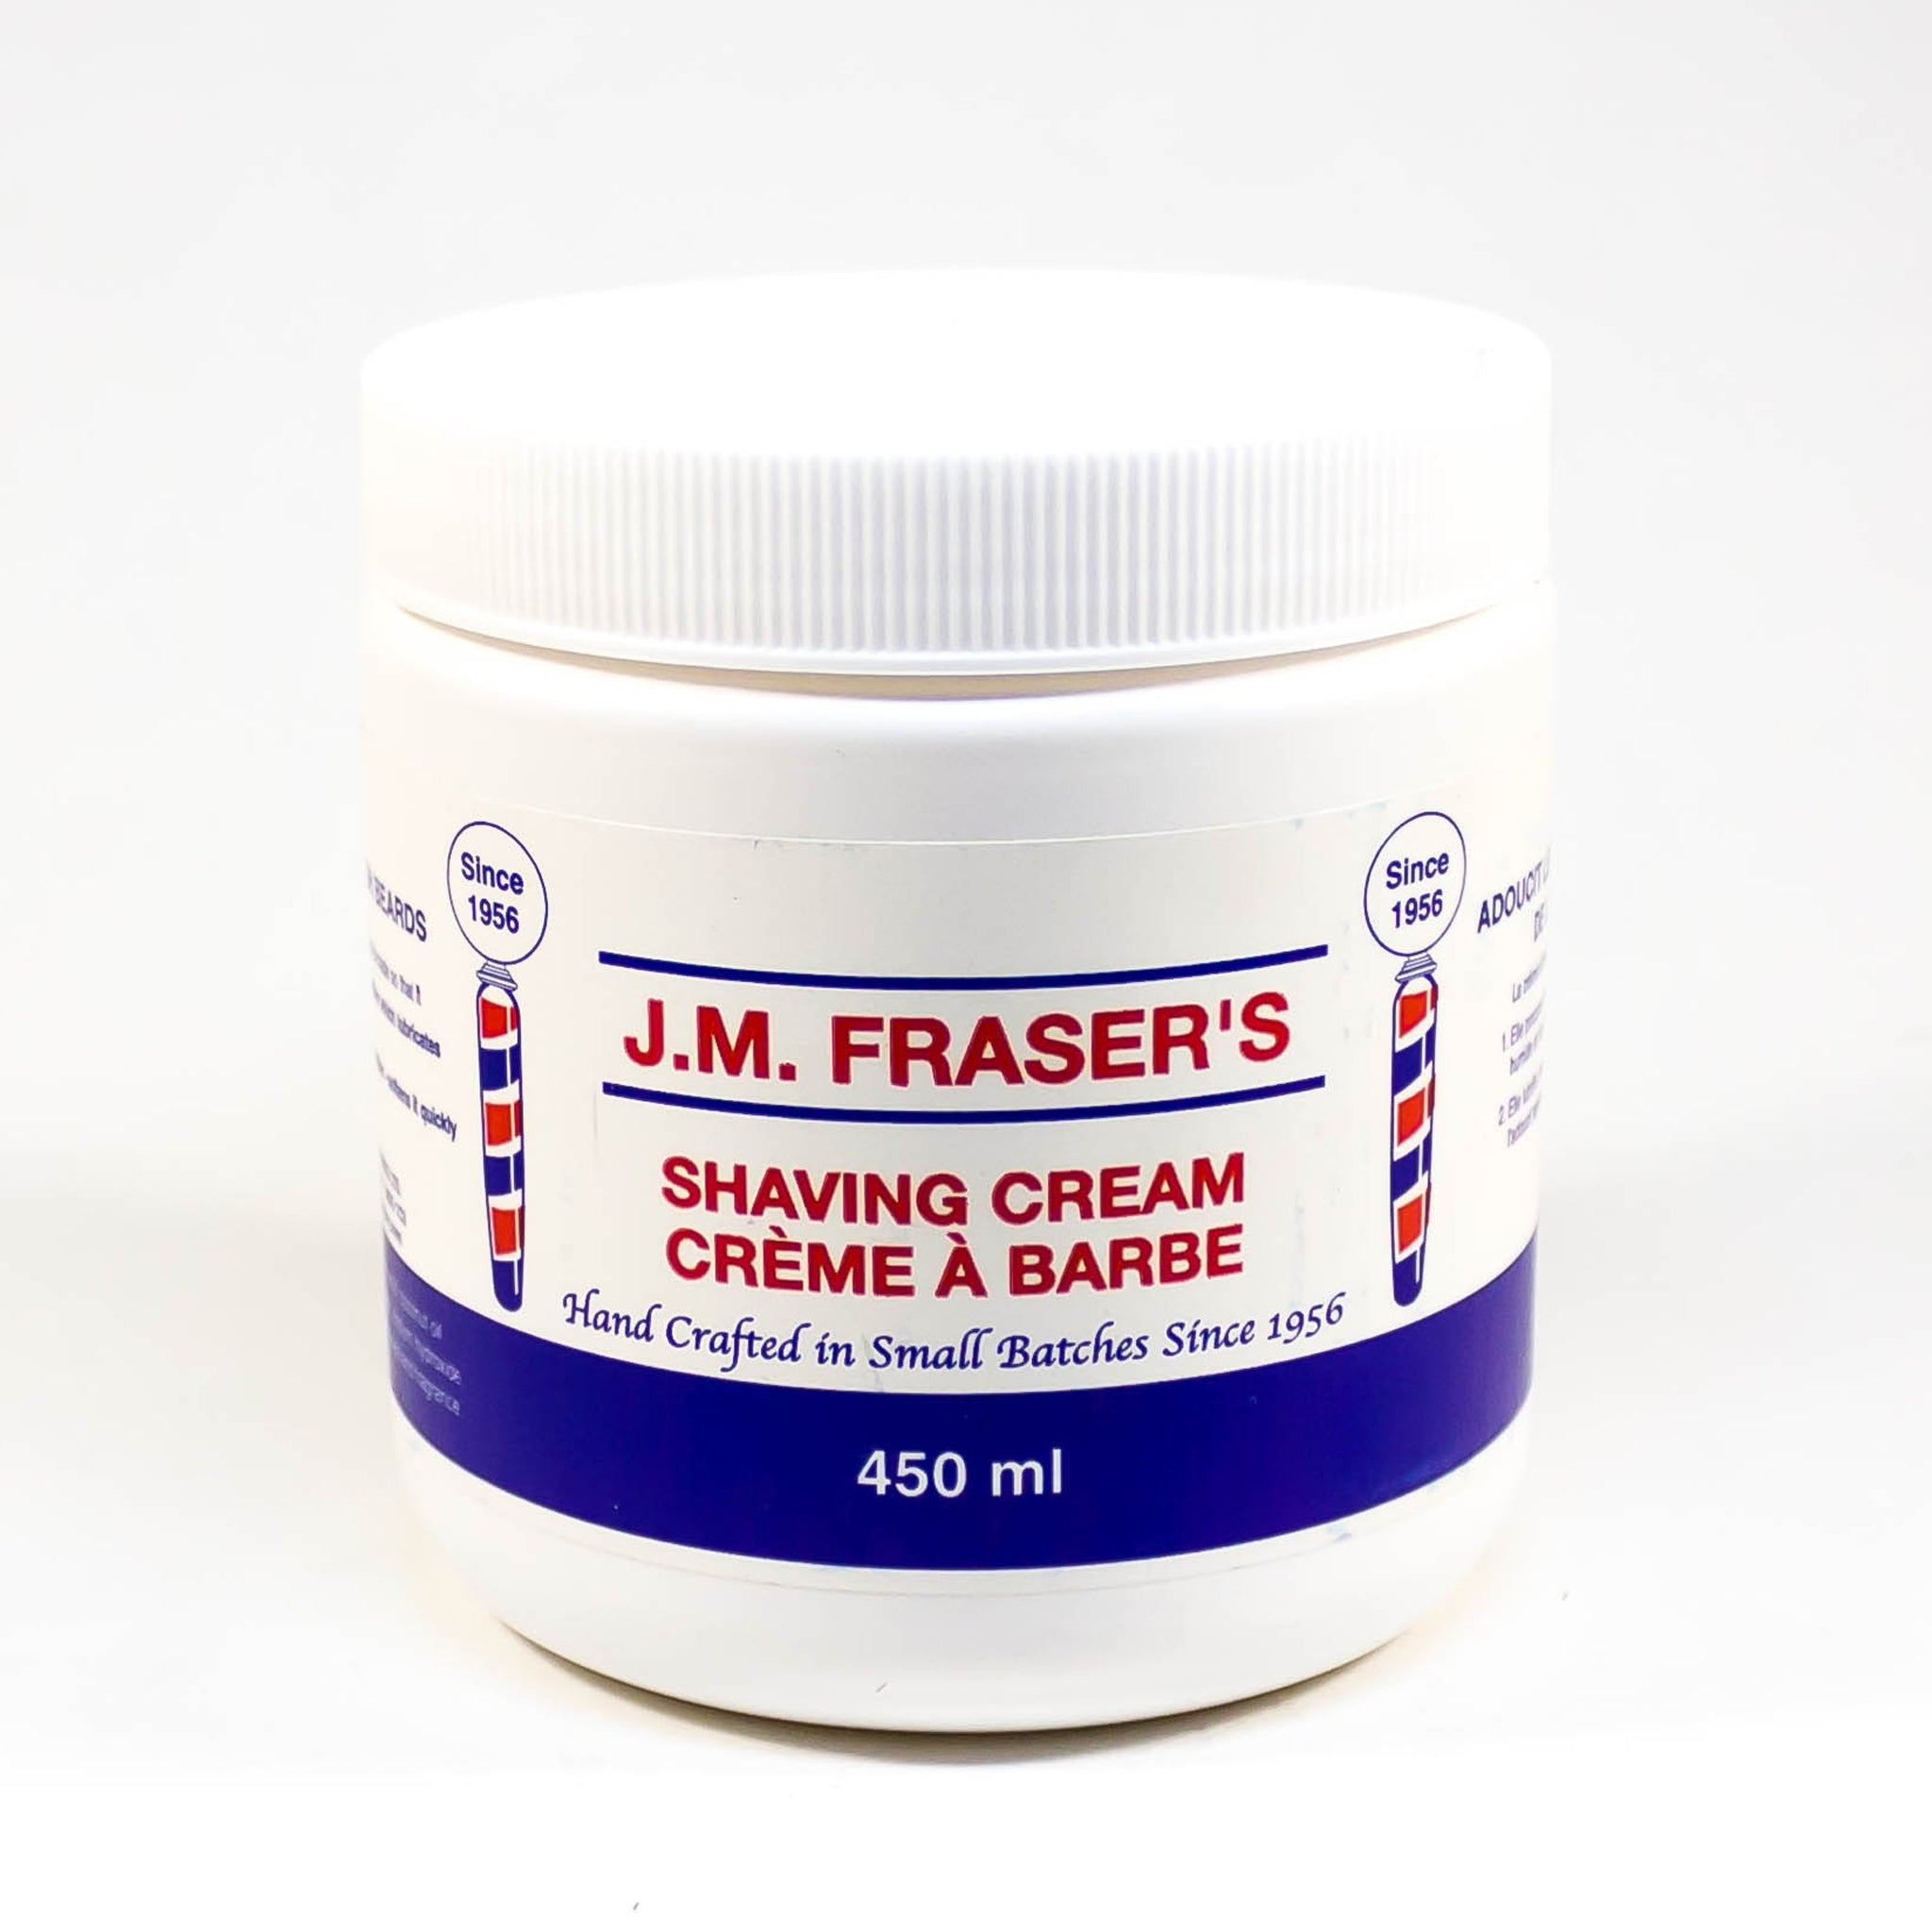 J.M. Frasiers Shaving Cream